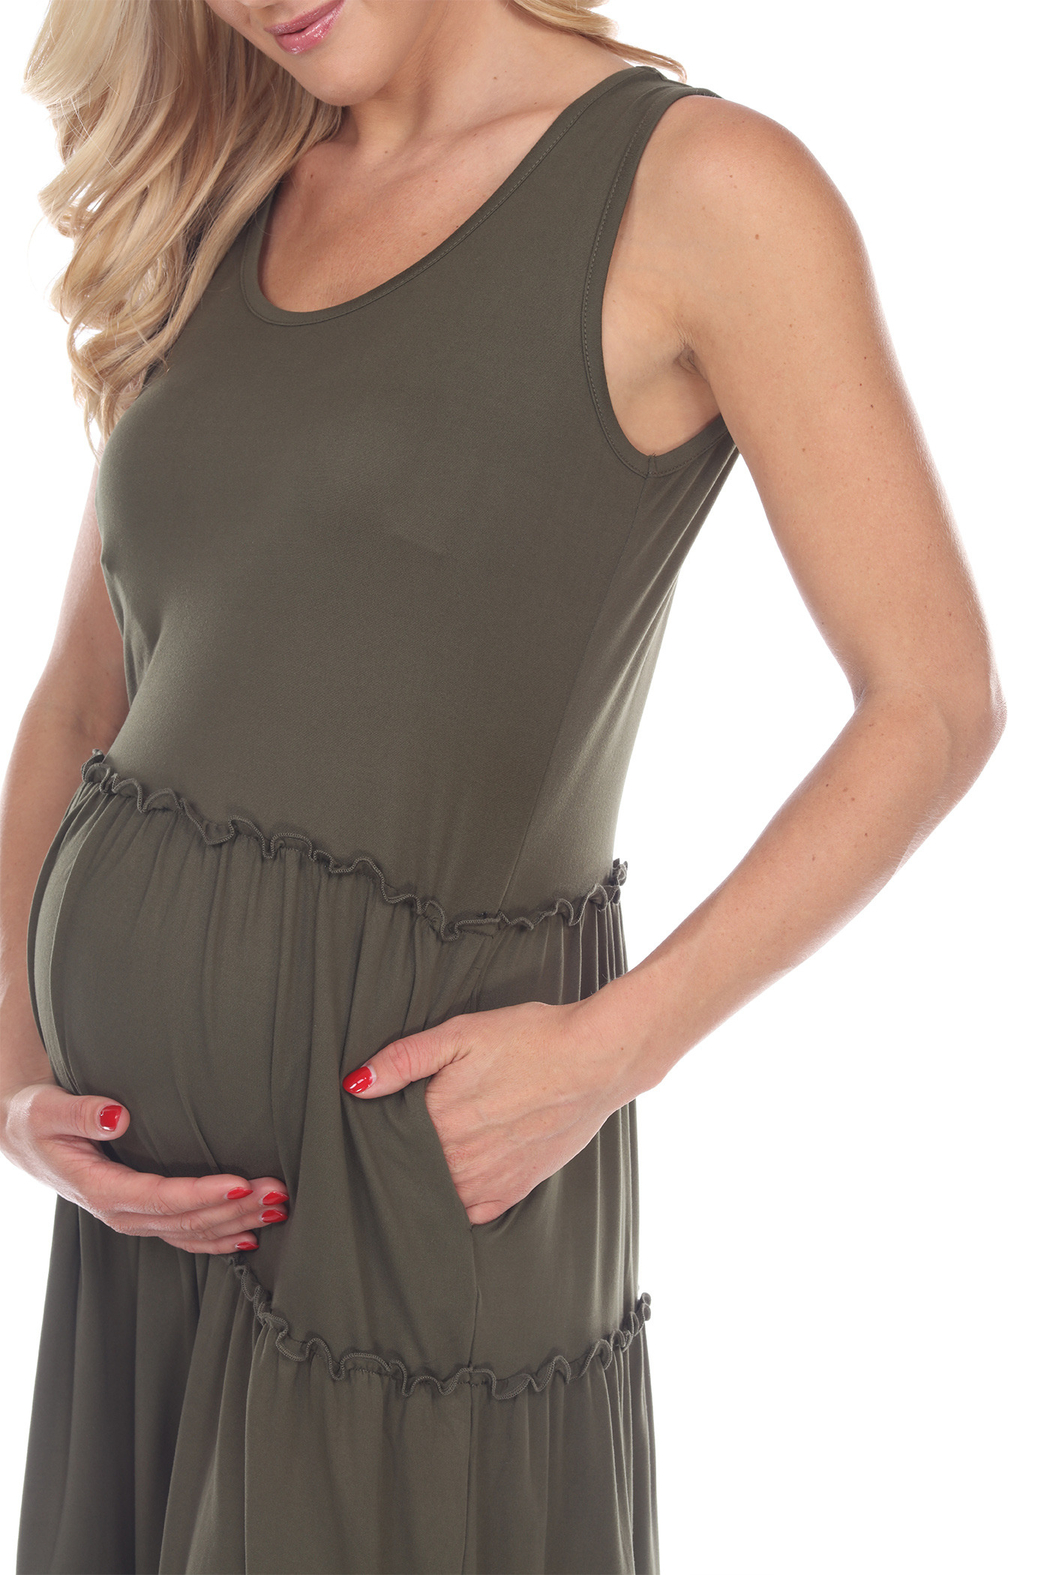 WhiteMark White Mark's Maternity Scoop Neck Tiered Midi Dress - Side Cropped Image